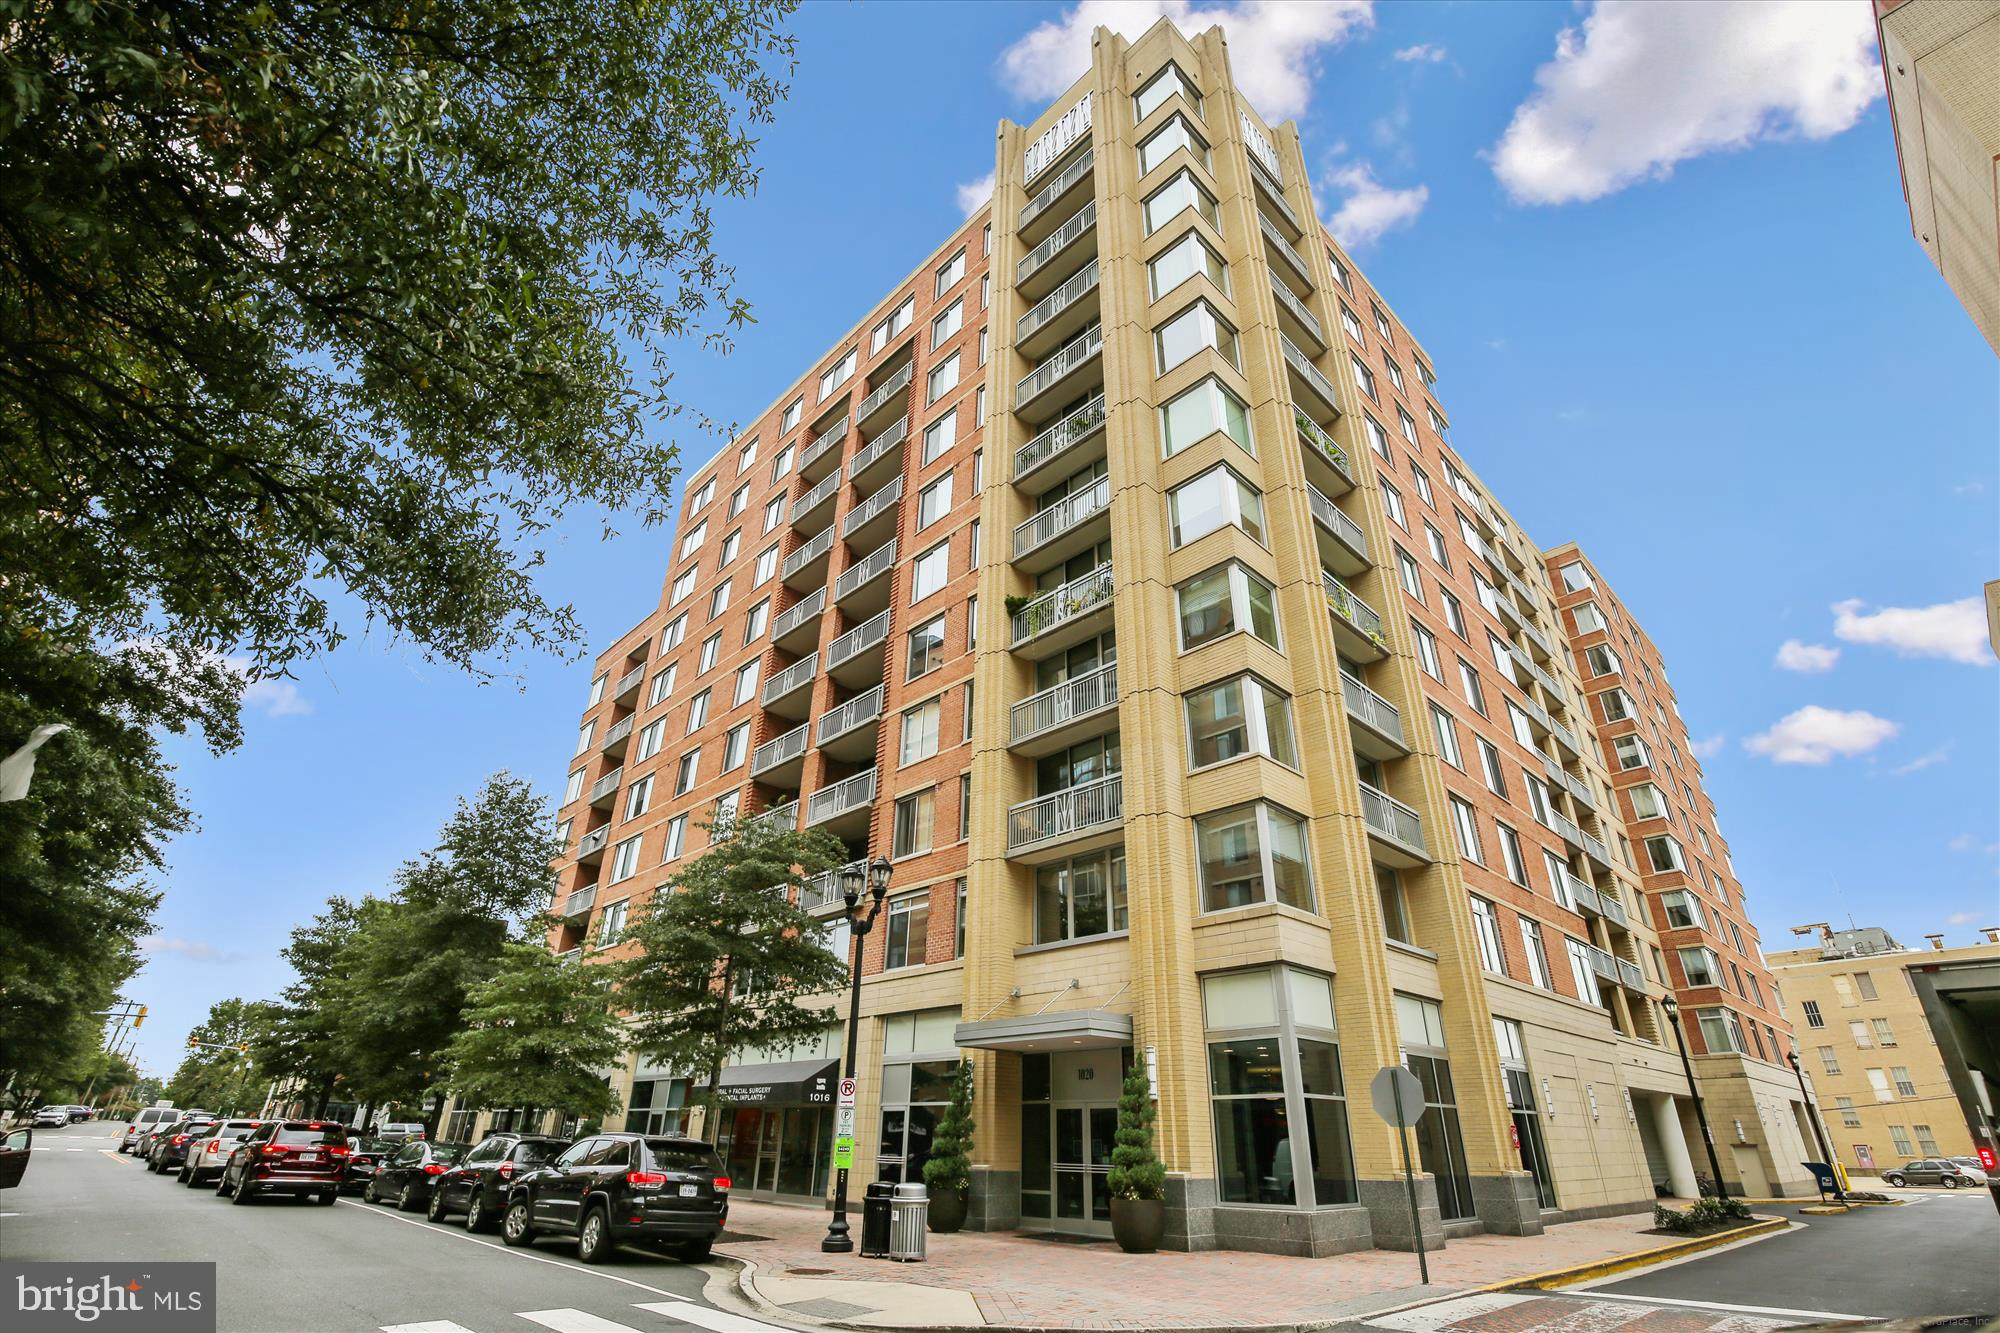 Rarely available 1,281 sq ft corner unit at the popular Phoenix Condo in Clarendon. Great floorplan with large living space, dining area, balcony, open concept kitchen with stainless steel appliances, granite counters, lots of windows, and sunlight. The owner's bedroom has an upgraded walk-in closet with Elfa shelving, carpet, and en-suite bath with dual sinks and shower. The second bedroom has a large closet and balcony access. The 2nd full bath features a tub and large vanity with storage. There's a stacked washer/dryer, new water heater, coat closet, and more storage space in the utility closet. Unit comes with 1 garage parking space close to elevator. Building amenities include a rooftop pool, fitness center, business center, library, community room, courtyard with benches, and on-site management with staffed front desk. Pet friendly, located just 2 blocks from the Clarendon metro. Prime location to Lyon Hall, Clarendon restaurants, Whole Foods, Trader Joes, Clarendon Commons, and more! Extra 16-space parking garage for guests in addition to plenty of meter parking spaces. 2 pets allowed per unit. Extra parking avail for rent $120-140/mo.